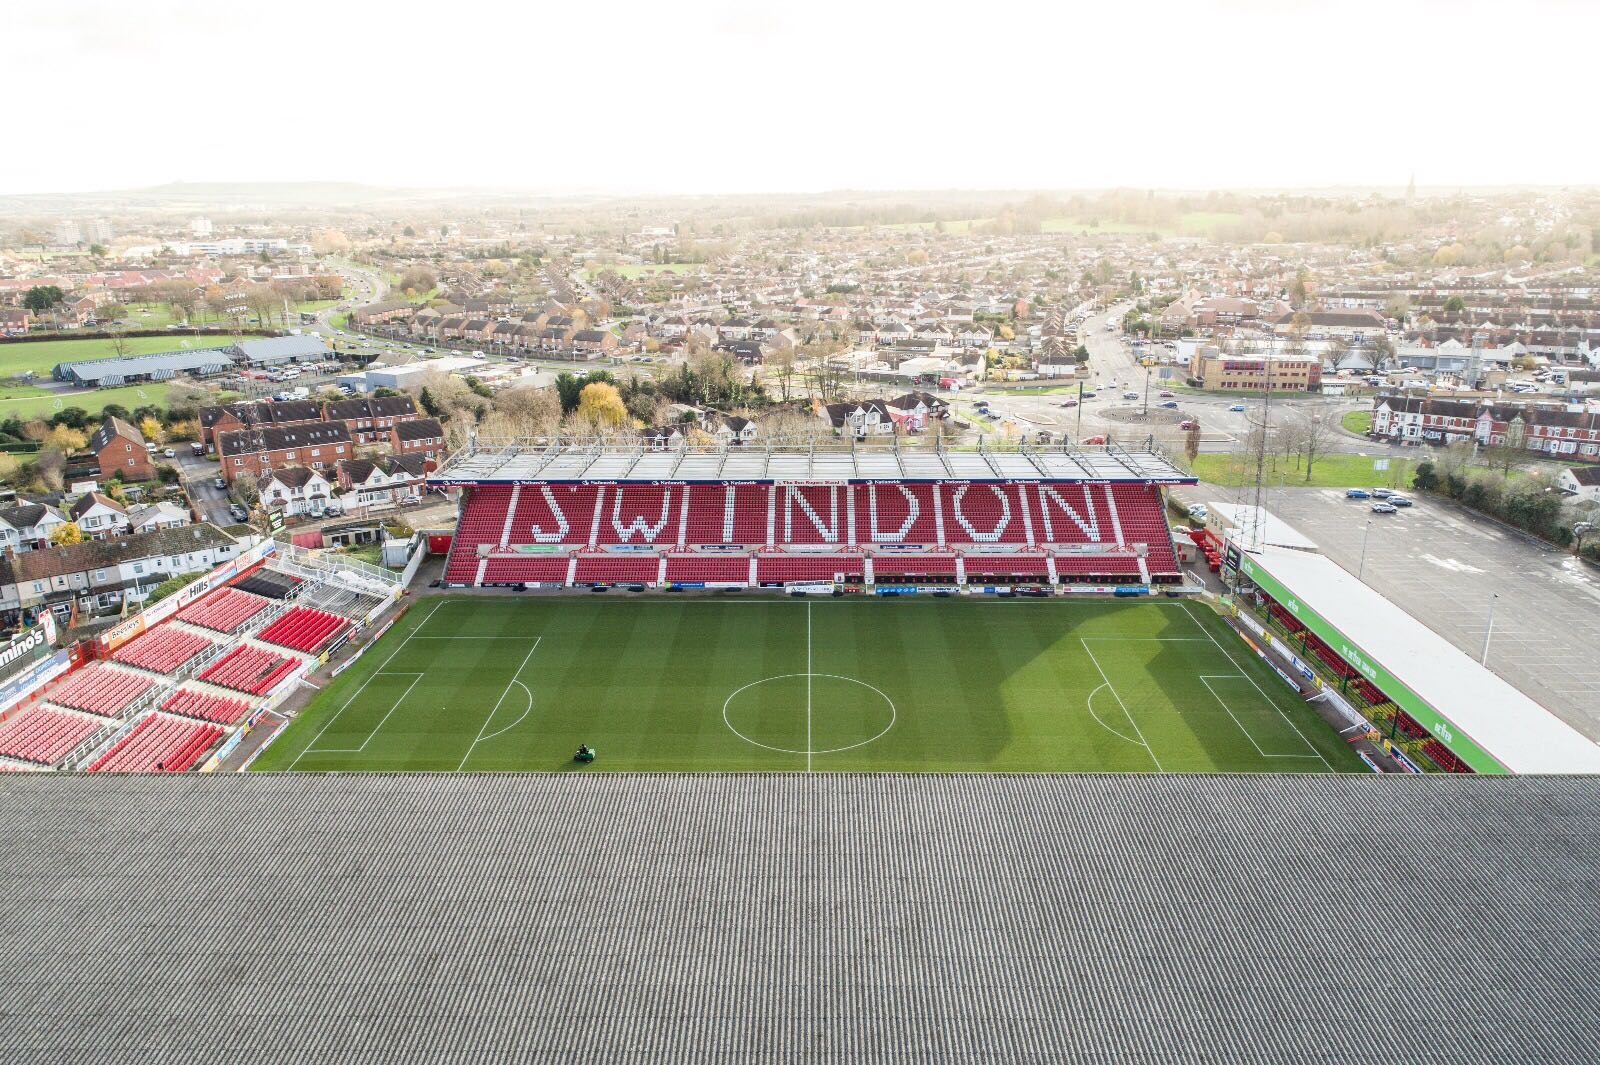 County Ground – Community Shares